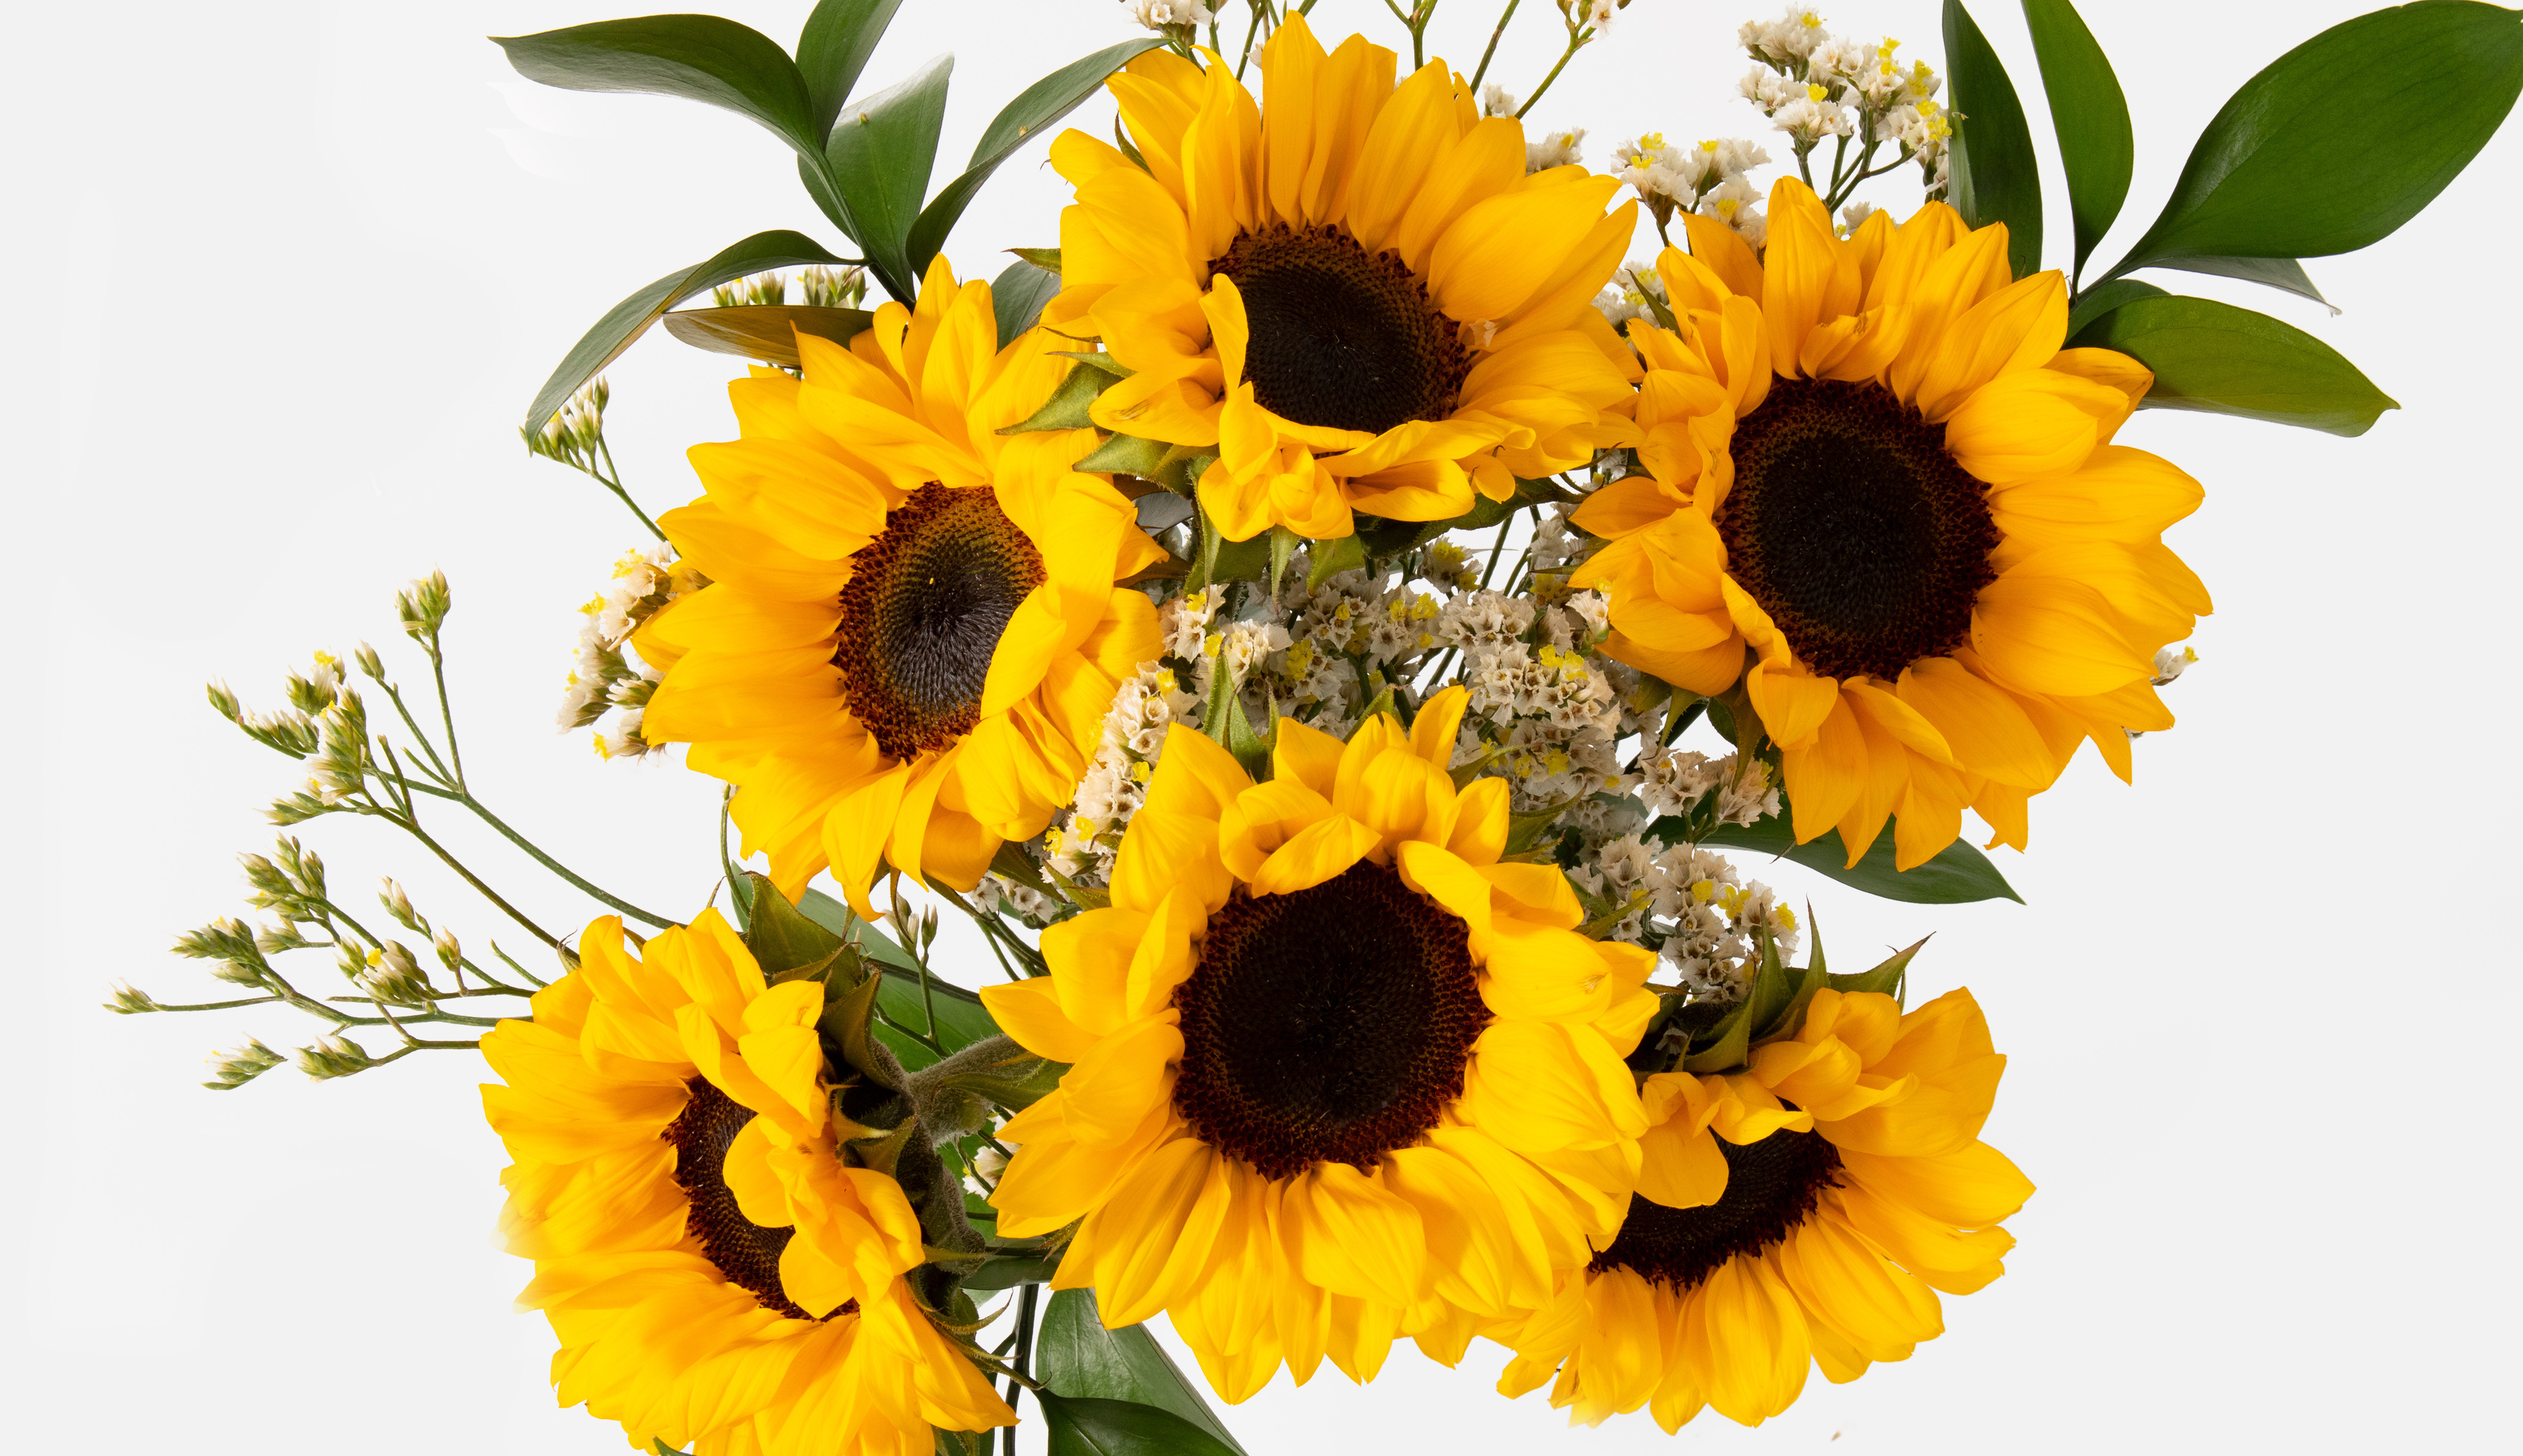 Top down view of sunflower bouquet.